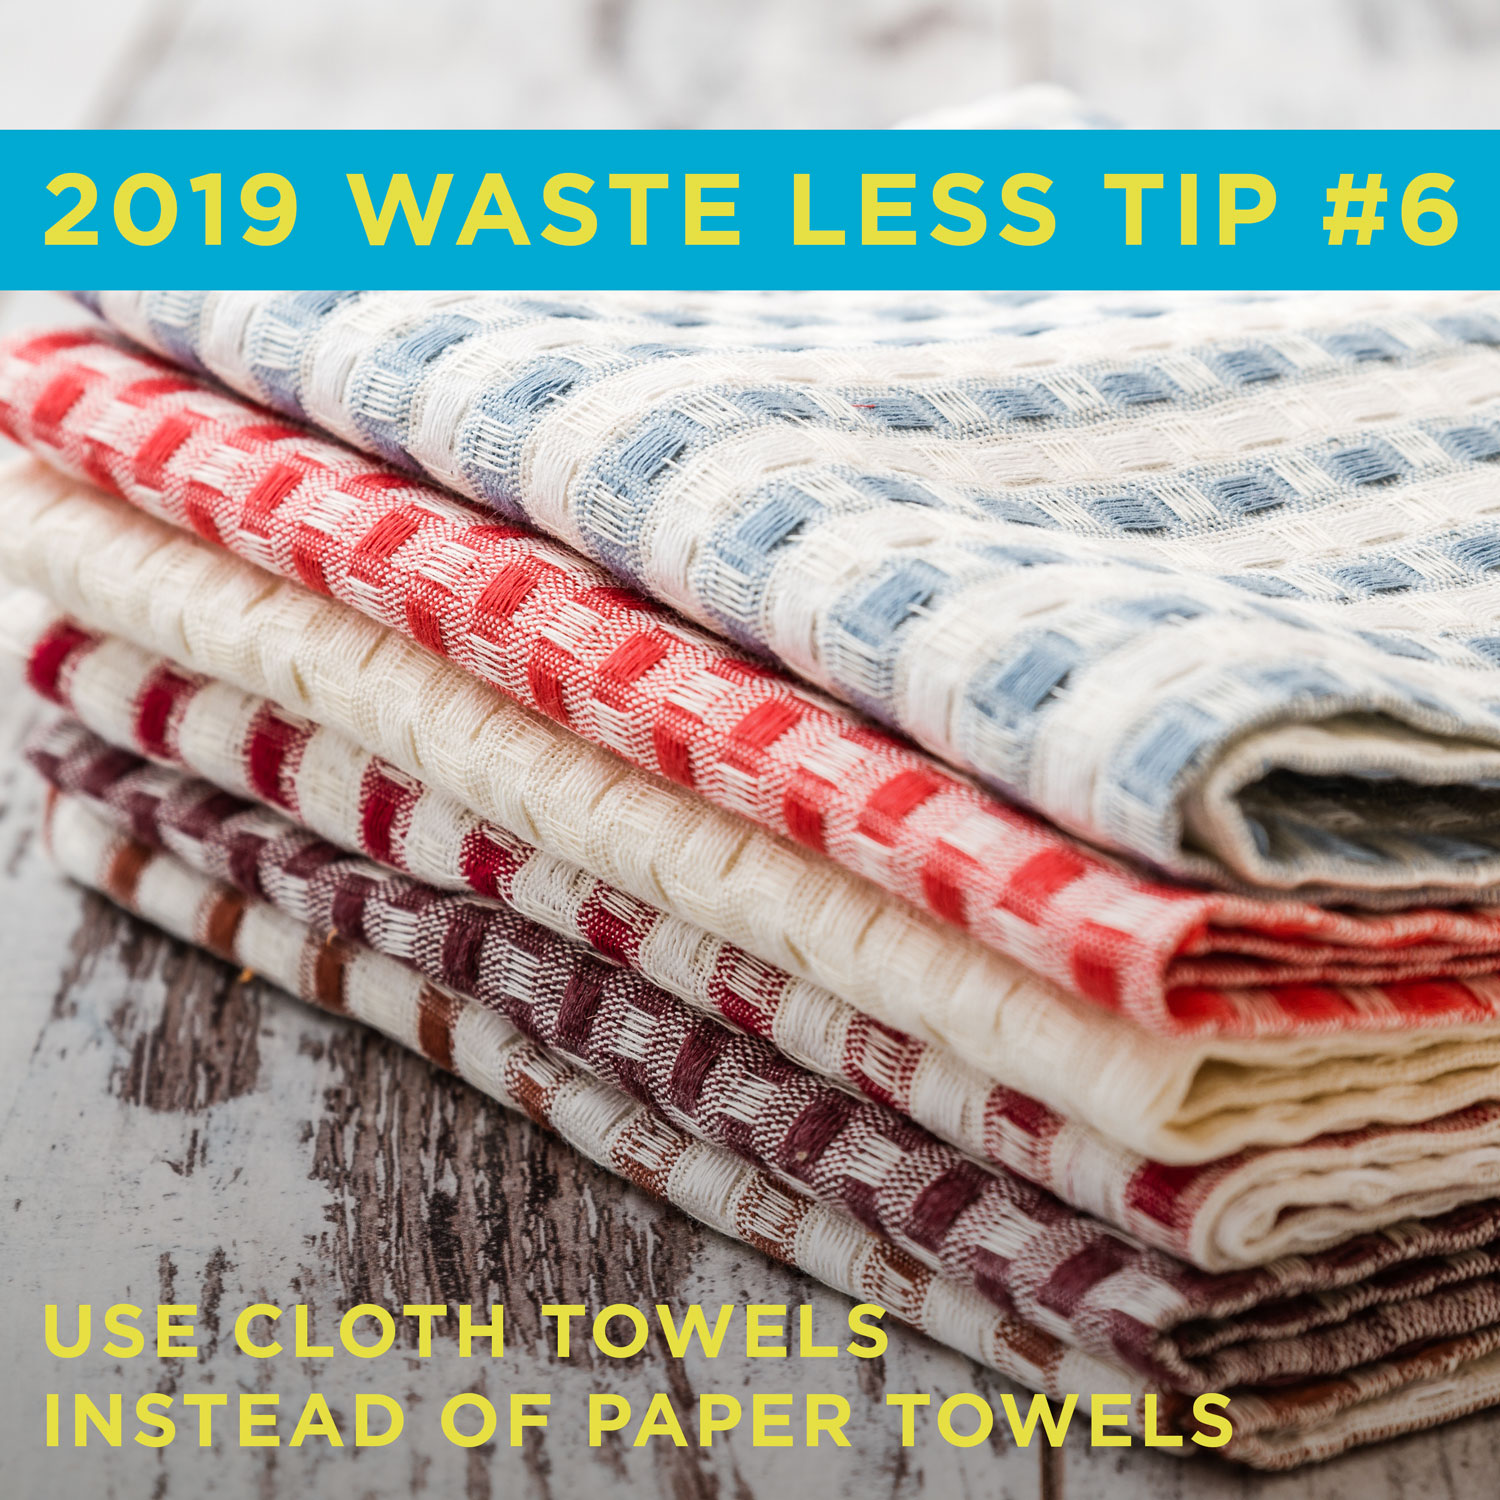 Environmentally friendly tip 6 is use cloth towels instead of paper towels